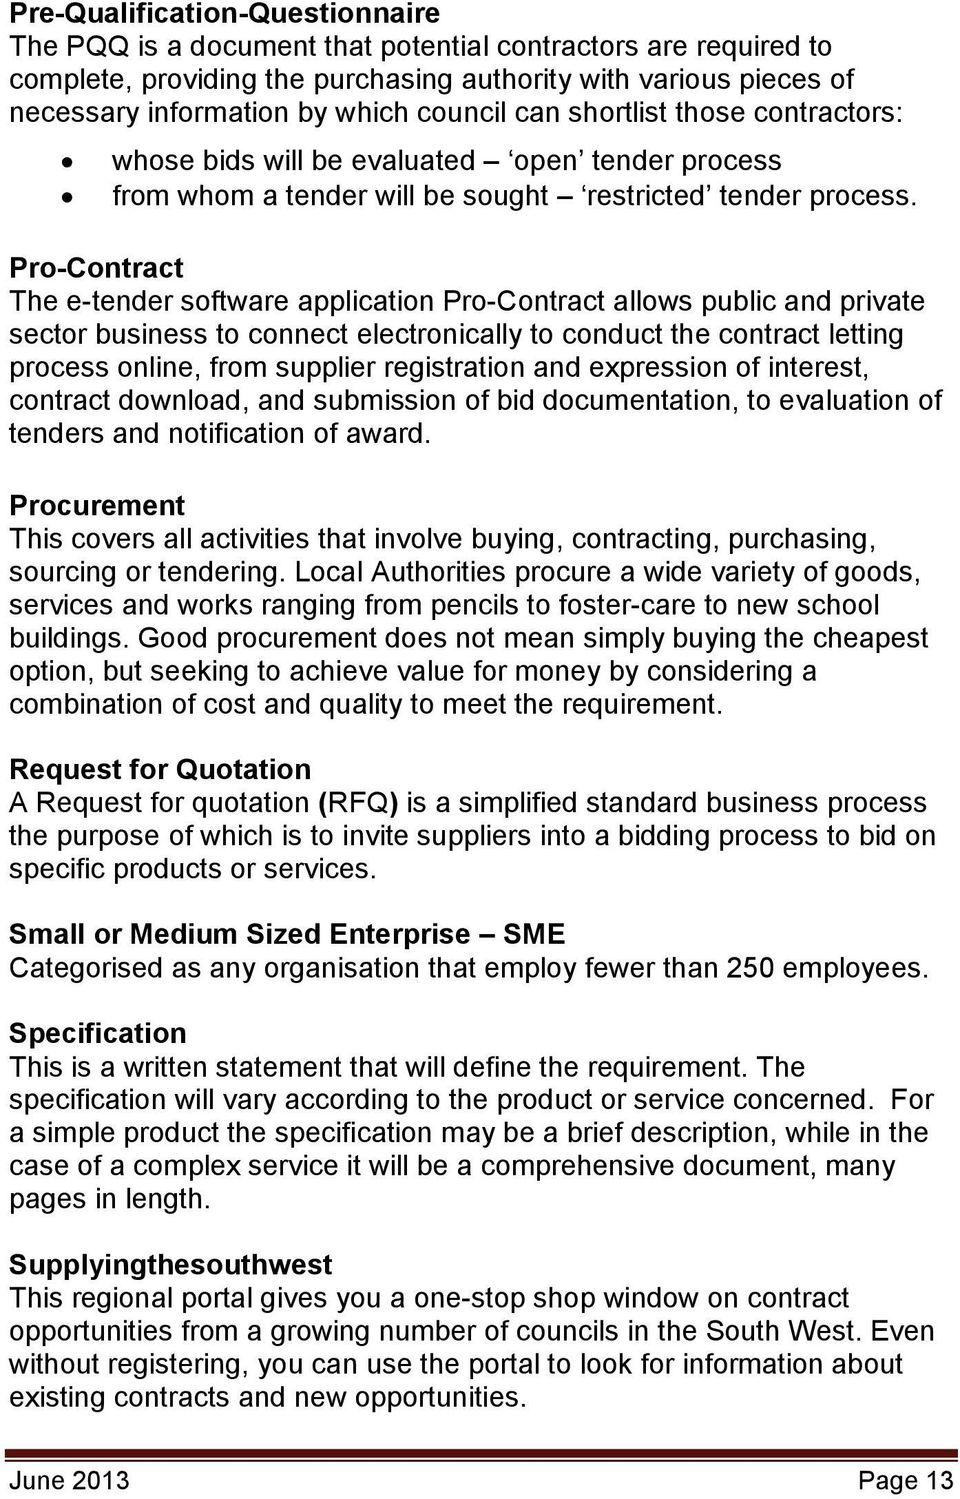 Pro-Contract The e-tender software application Pro-Contract allows public and private sector business to connect electronically to conduct the contract letting process online, from supplier